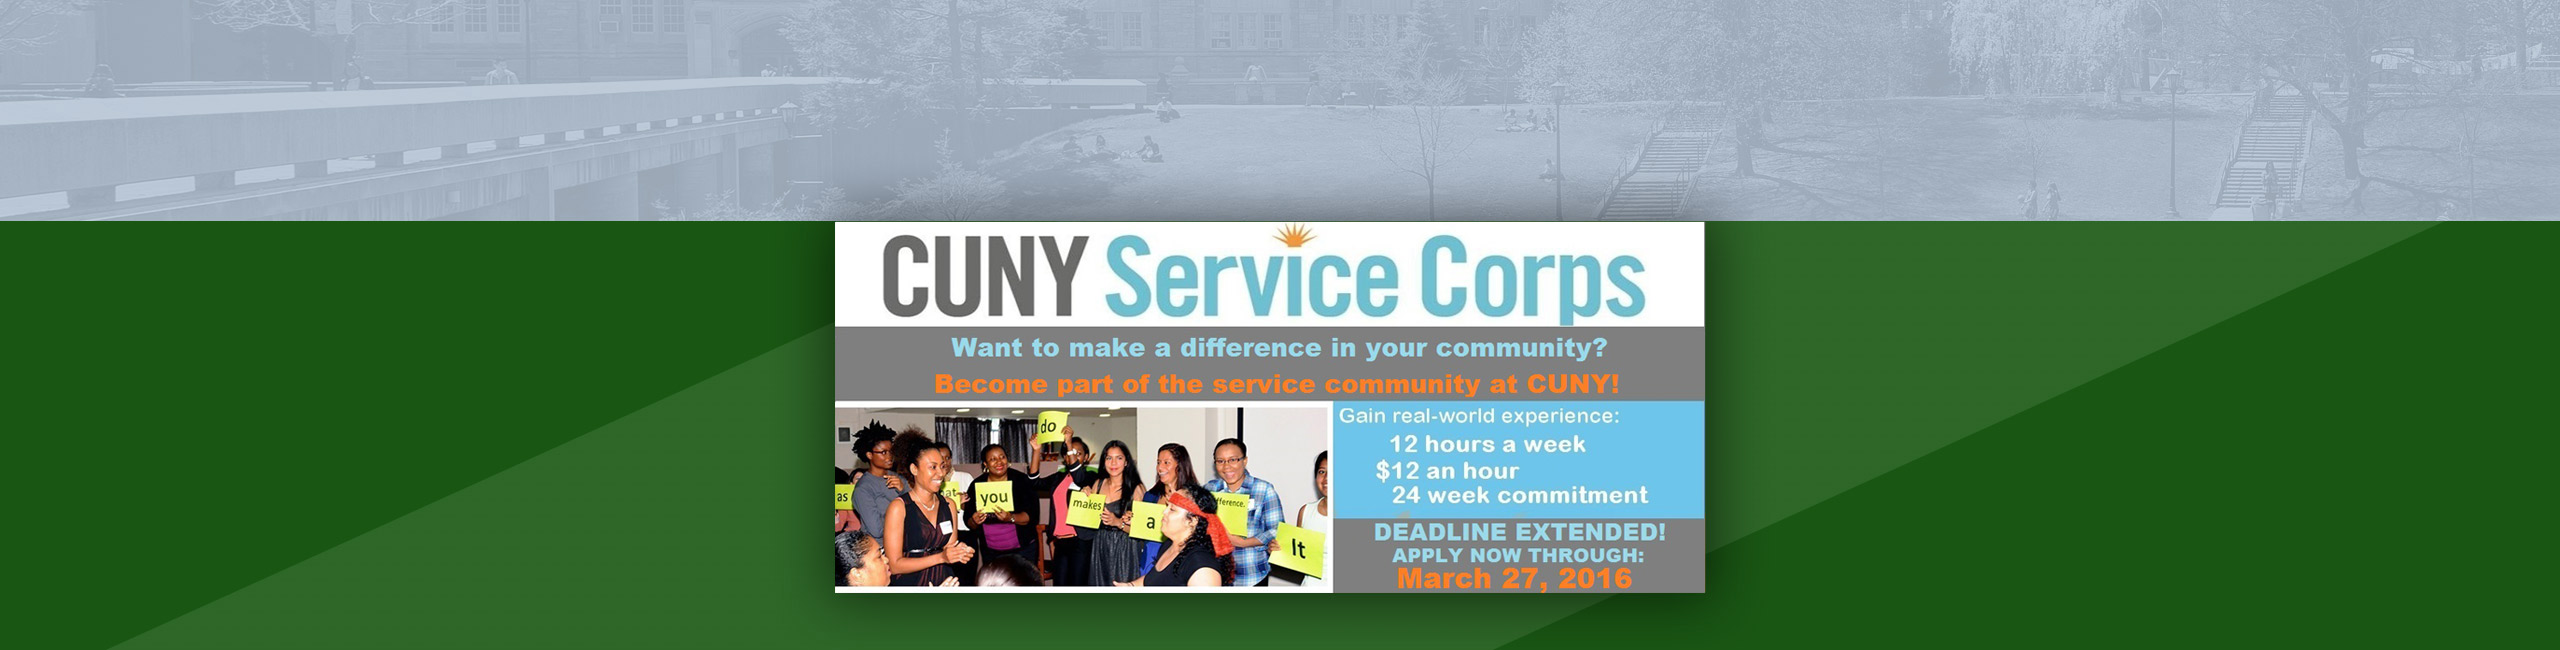 CUNY Service Corp